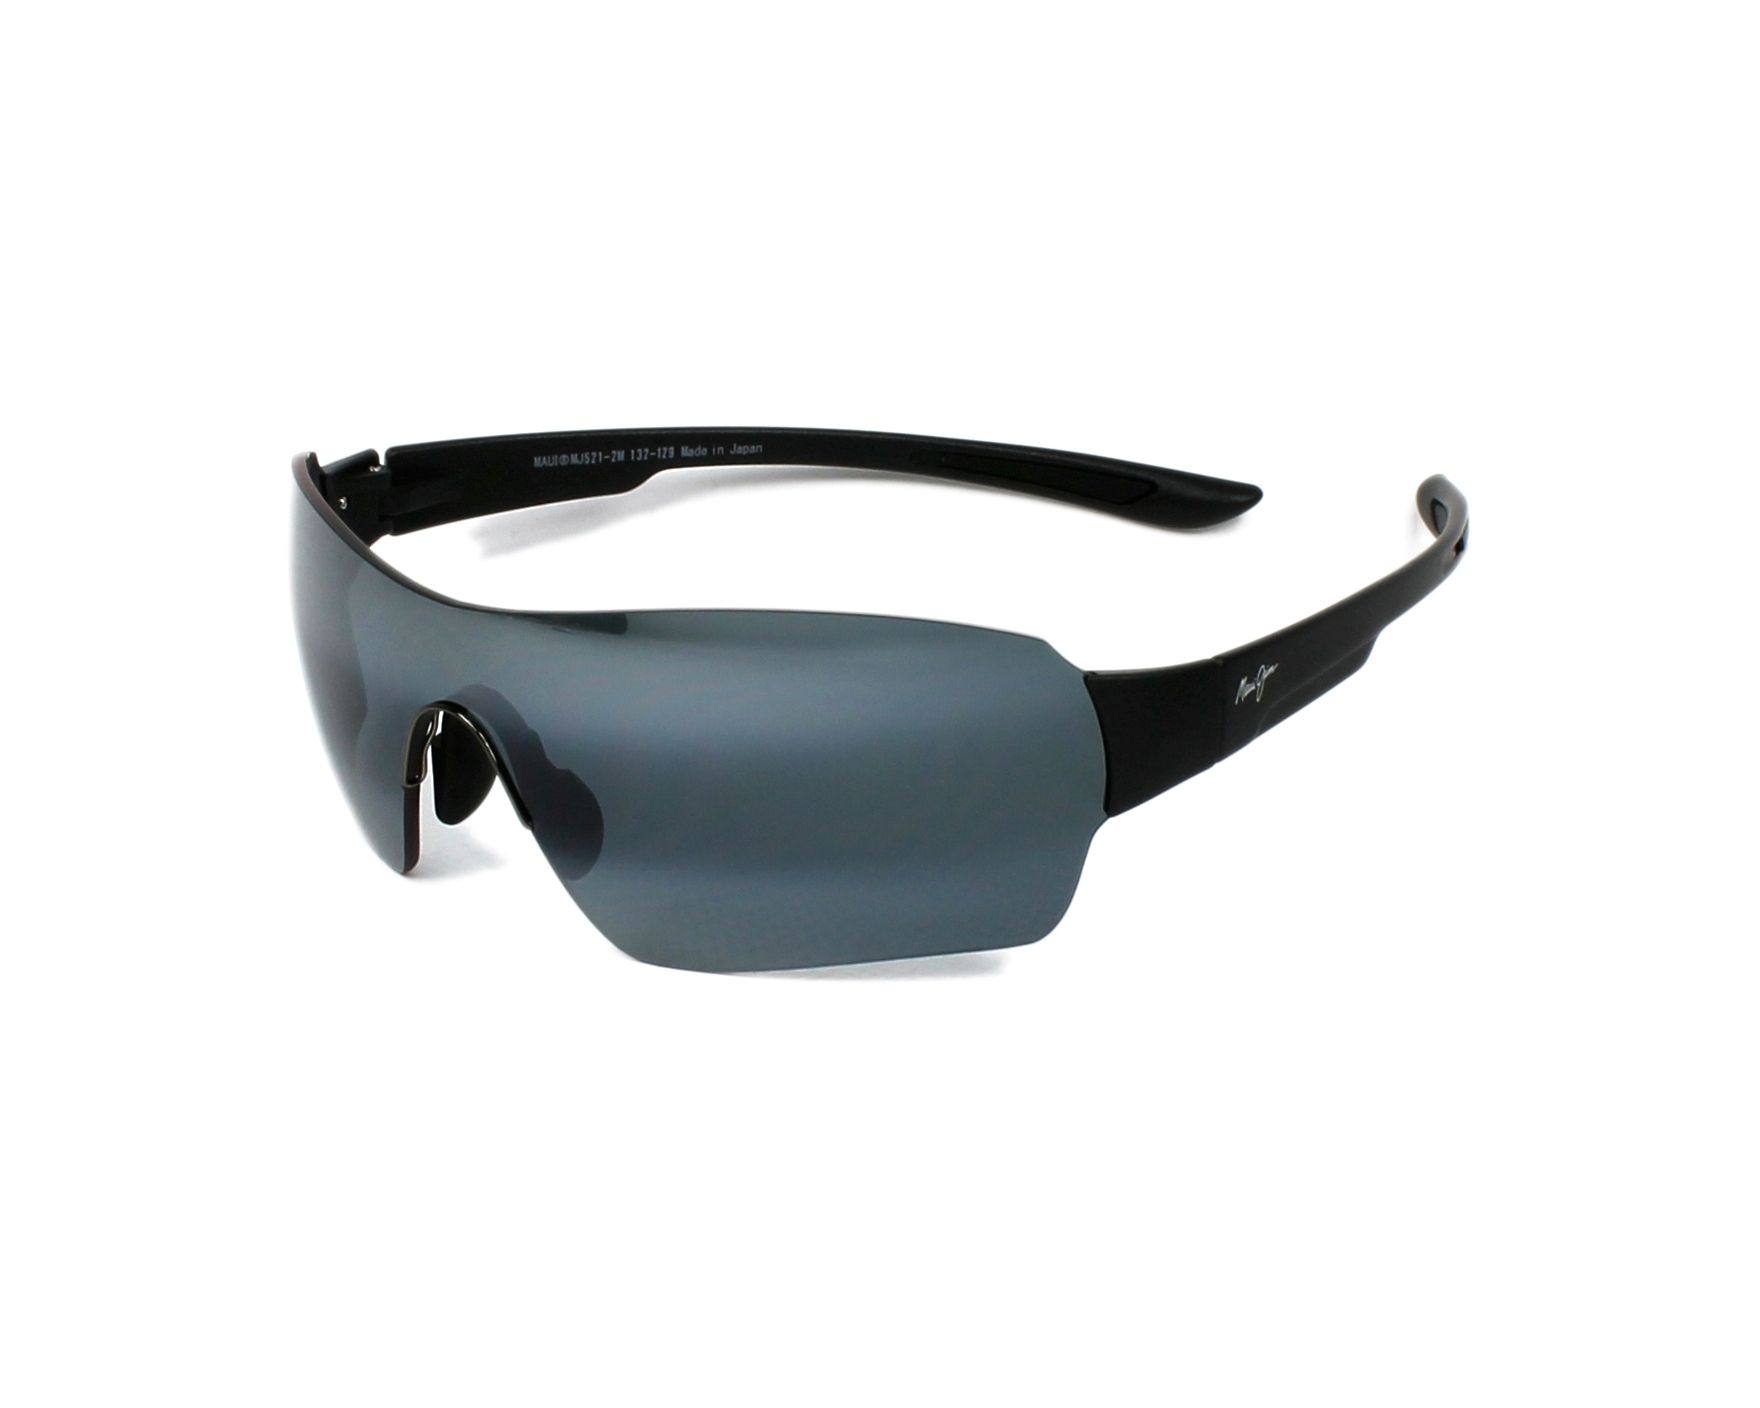 fb4bb90d009 Sunglasses Maui Jim 521 2M - Black profile view